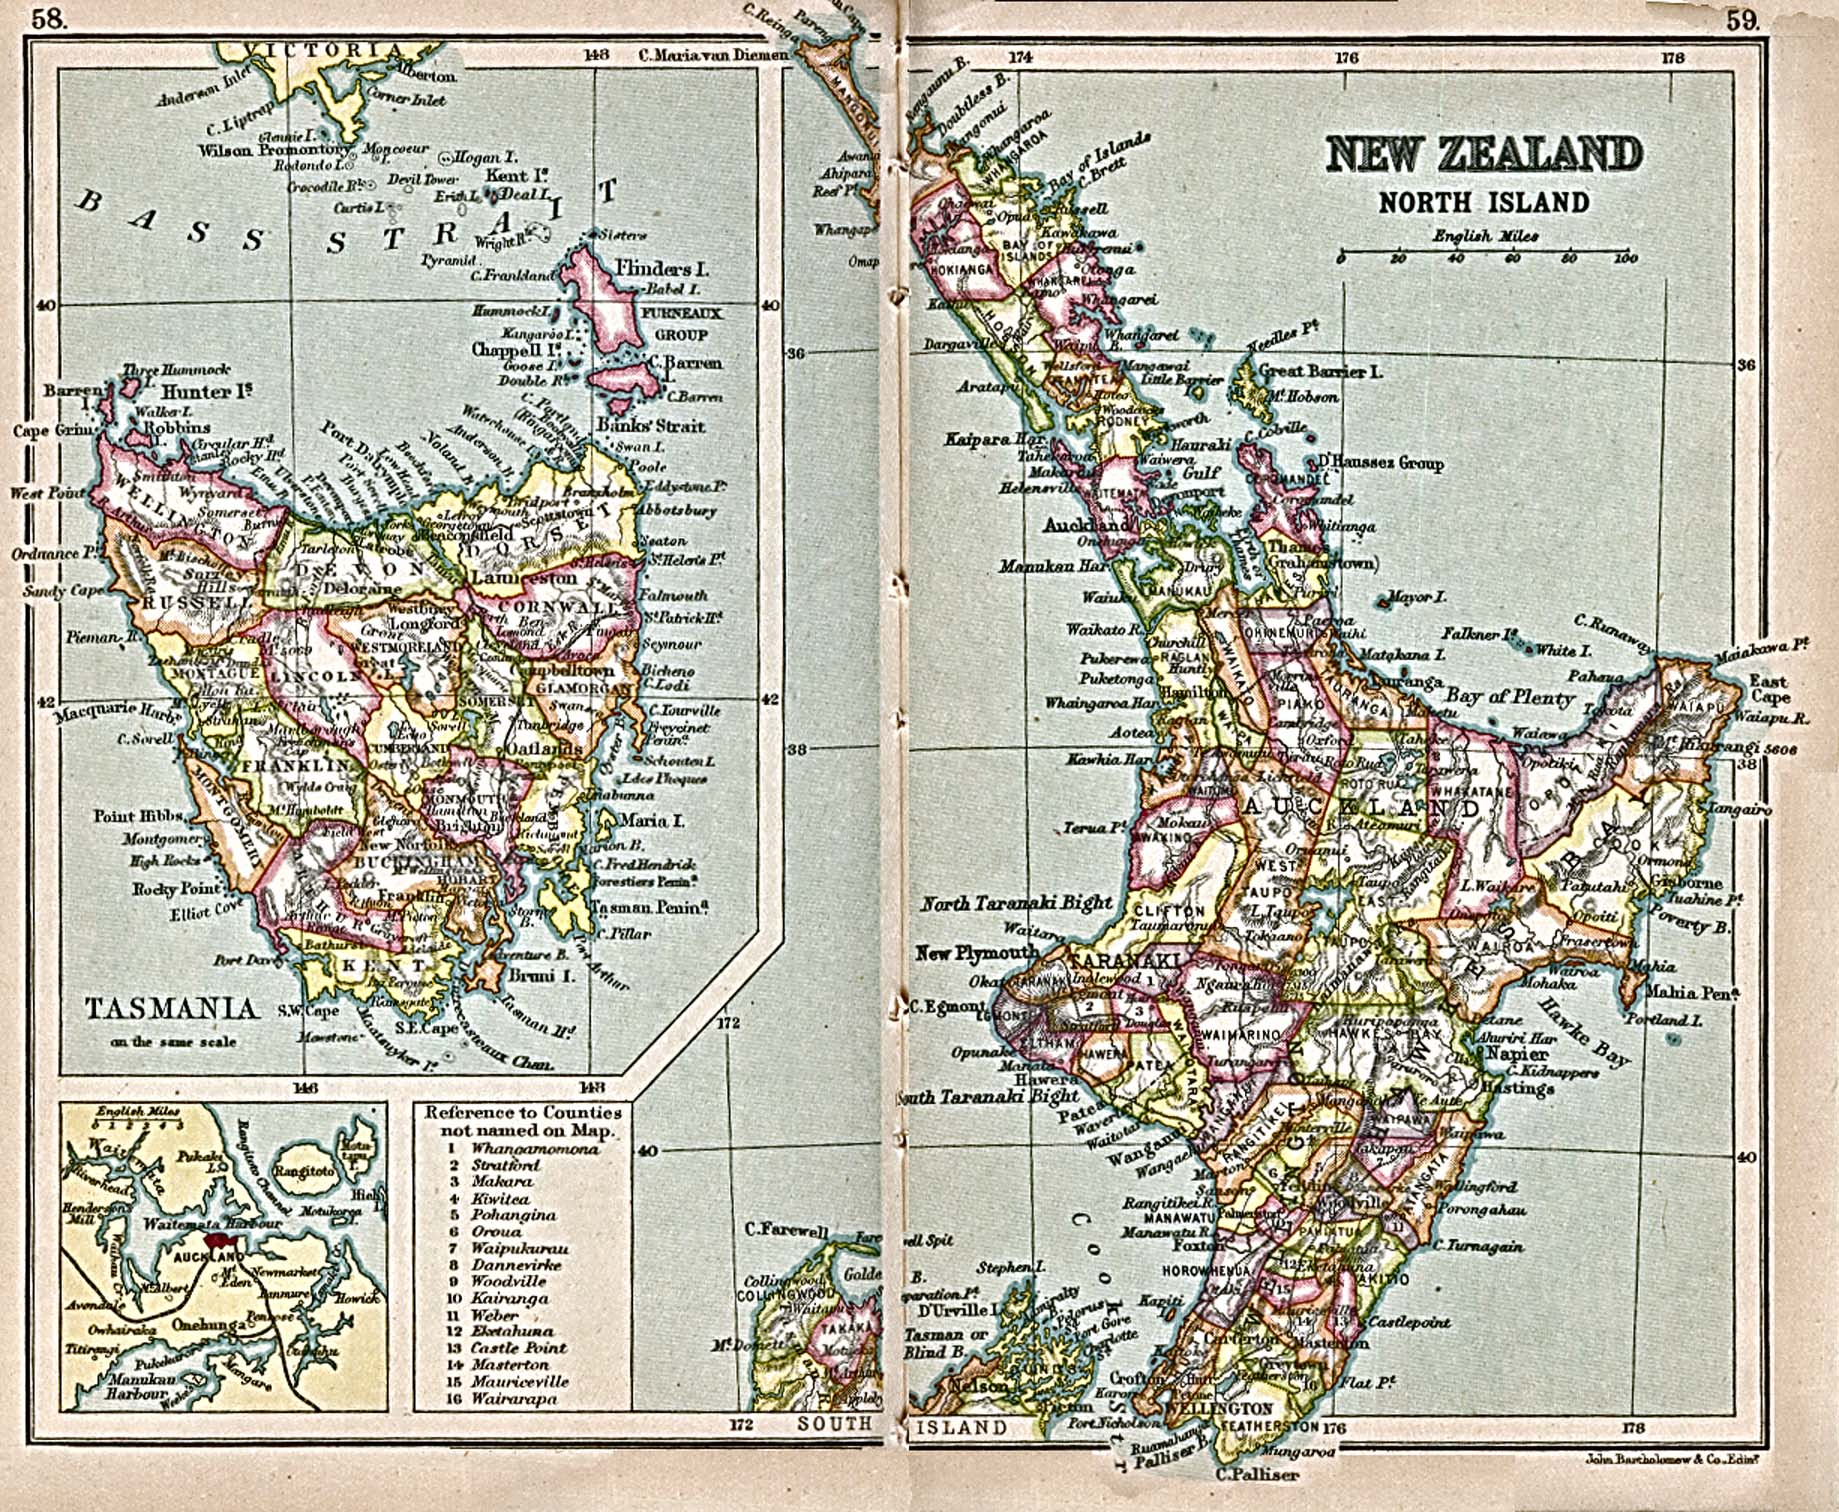 "Historical Maps of Australia and the Pacific. Tasmania 1913 (514K)""New Zealand, North Island"" and ""Tasmania"" from A Literary and Historical Atlas of Africa and Australasia, by J.G. Bartholomew. 1913"